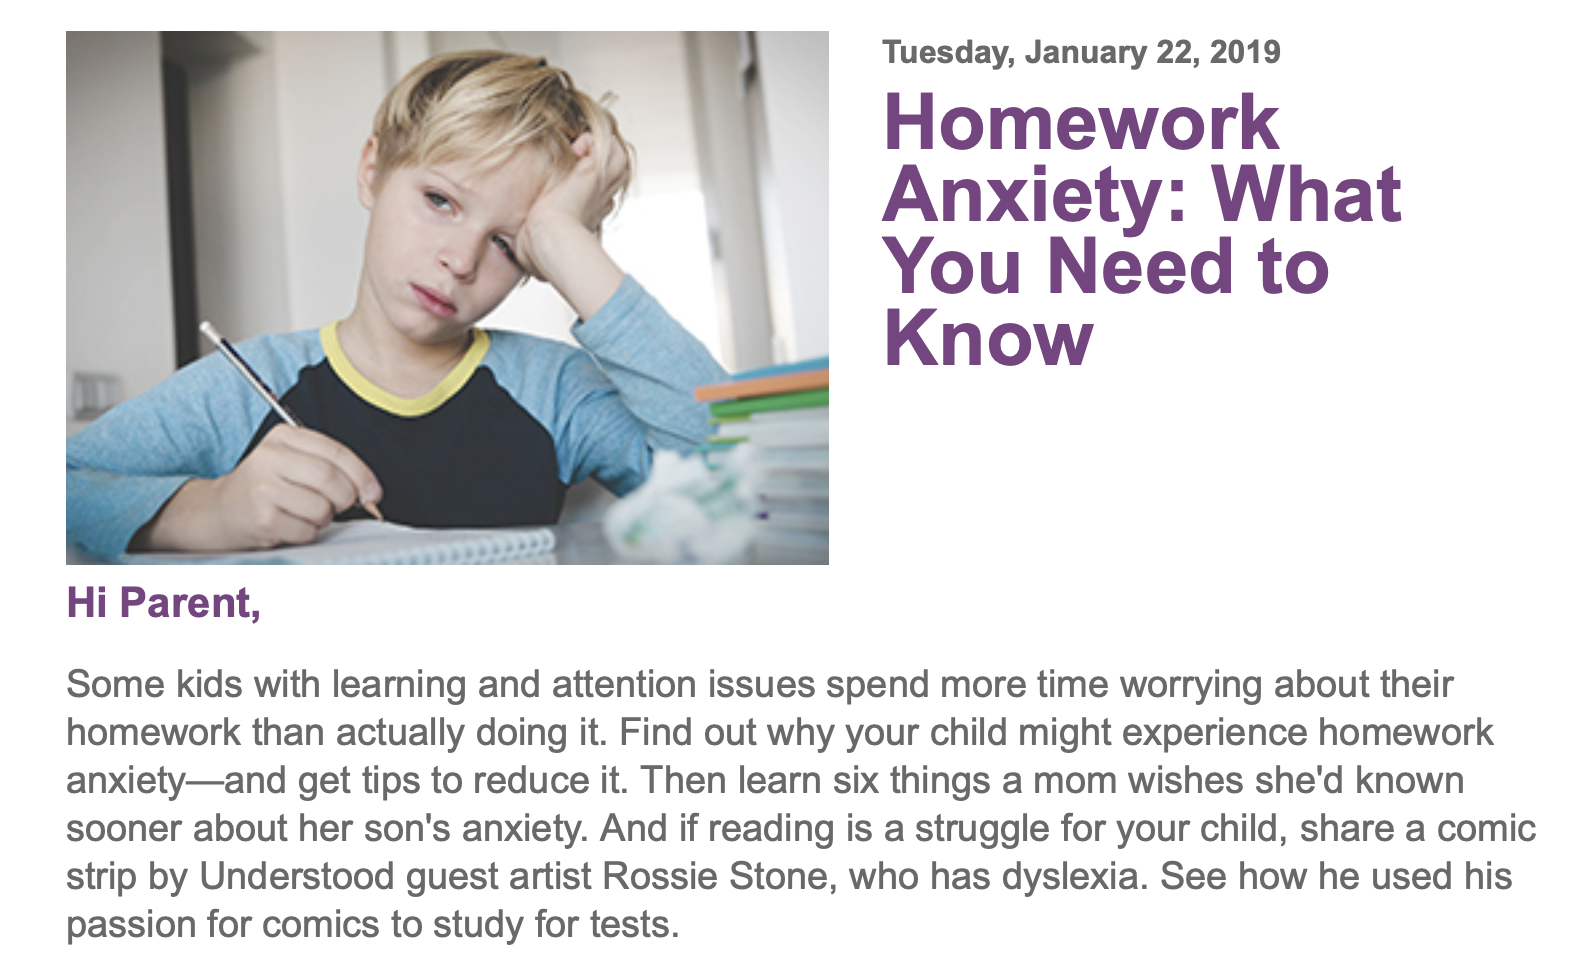 https://www.understood.org/en/school-learning/learning-at-home/homework-study-skills/homework-anxiety-what-you-need-to-know?cm_ven=ExactTarget&cm_cat=01222019_EnglishNewsletter&cm_pla=All+Subscribers&cm_ite=https%3a%2f%2fwww.understood.org%2fen%2fschool-learning%2flearning-at-home%2fhomework-study-skills%2fhomework-anxiety-what-you-need-to-know&cm_lm=bellem.snc@gmail.com&cm_ainfo=&utm_campaign=newsletter&utm_source=generalnews&utm_medium=email&utm_content=01222019_EnglishNewsletter&&&&